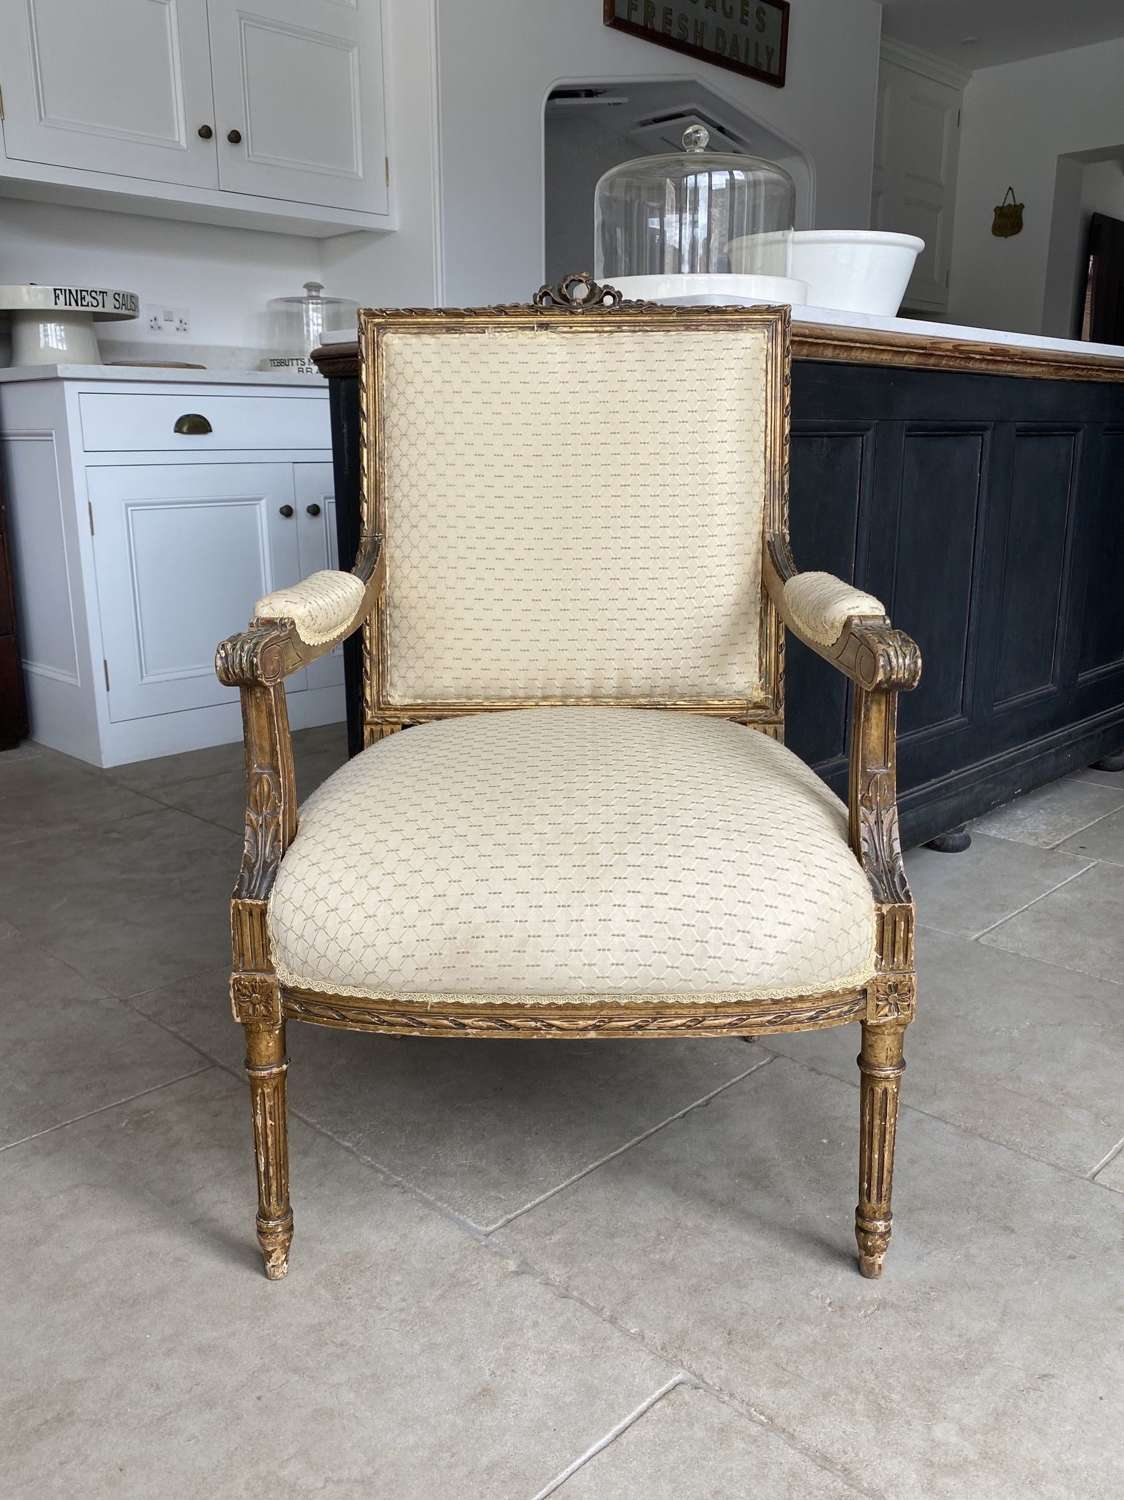 Antique c1920 Giltwood Arm Chair for Re-Upholstery